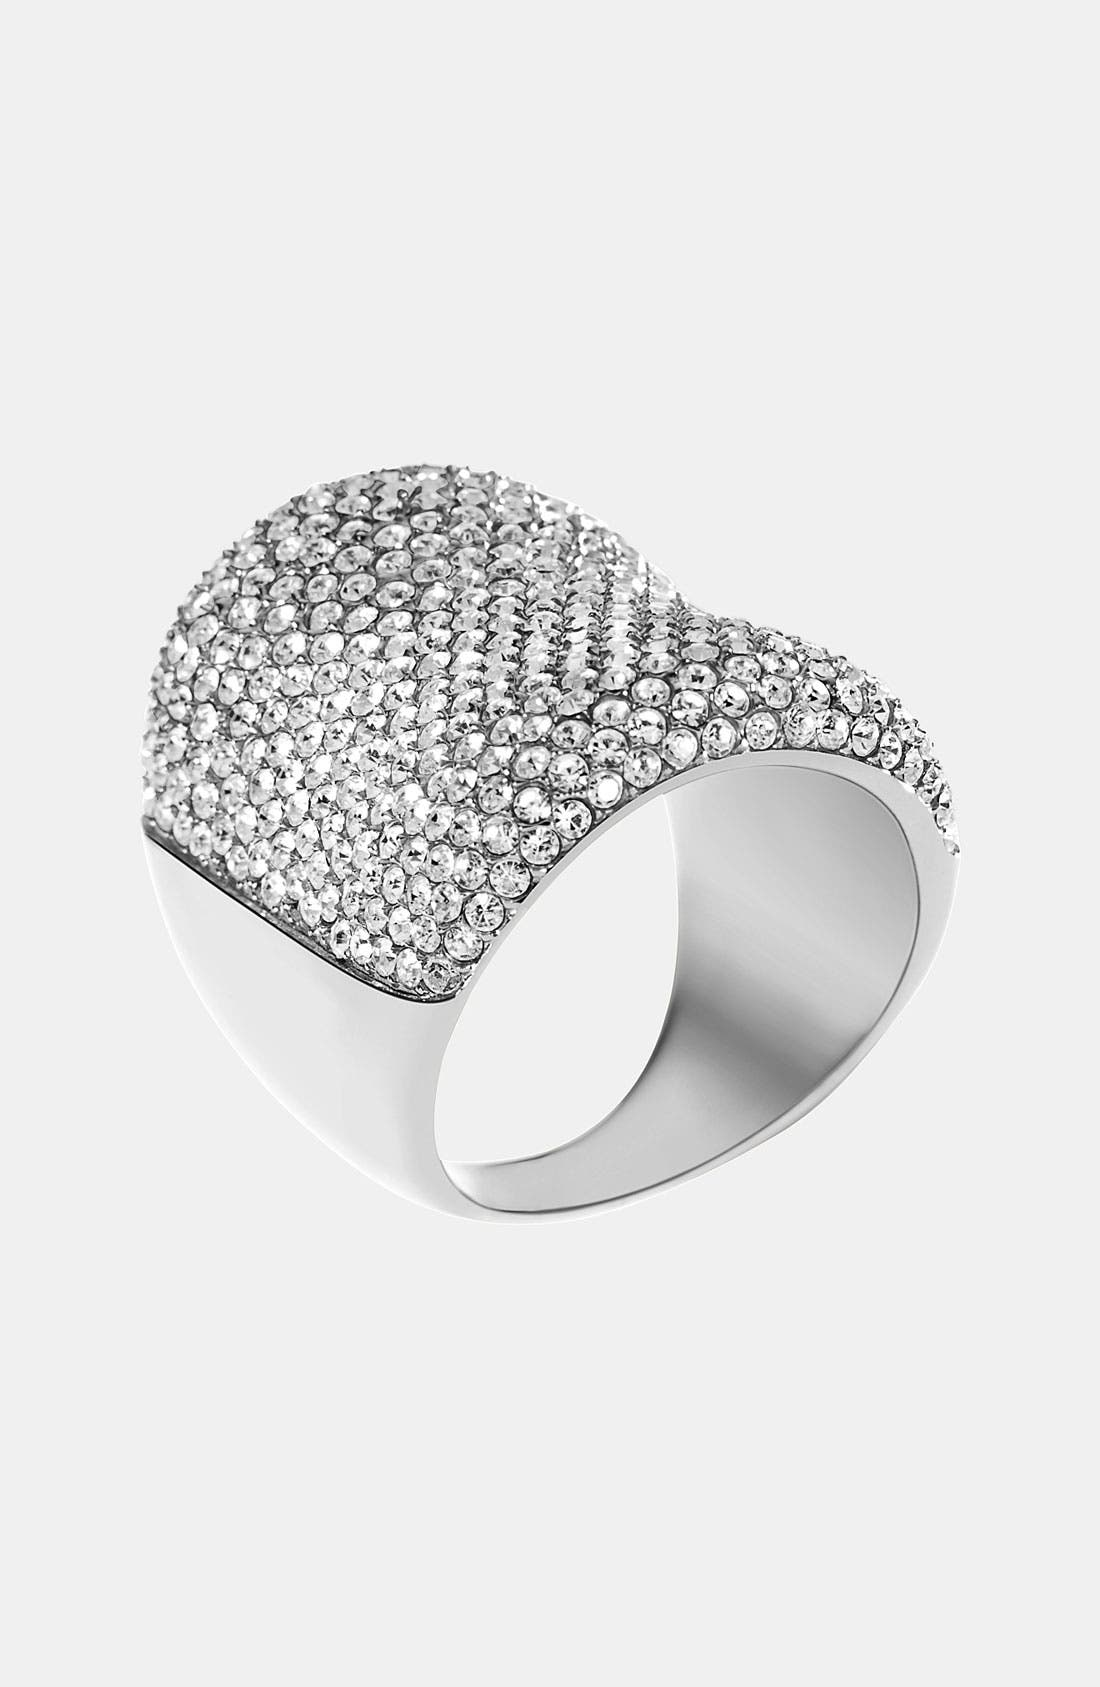 Alternate Image 1 Selected - Michael Kors 'Brilliance' Saddle Ring